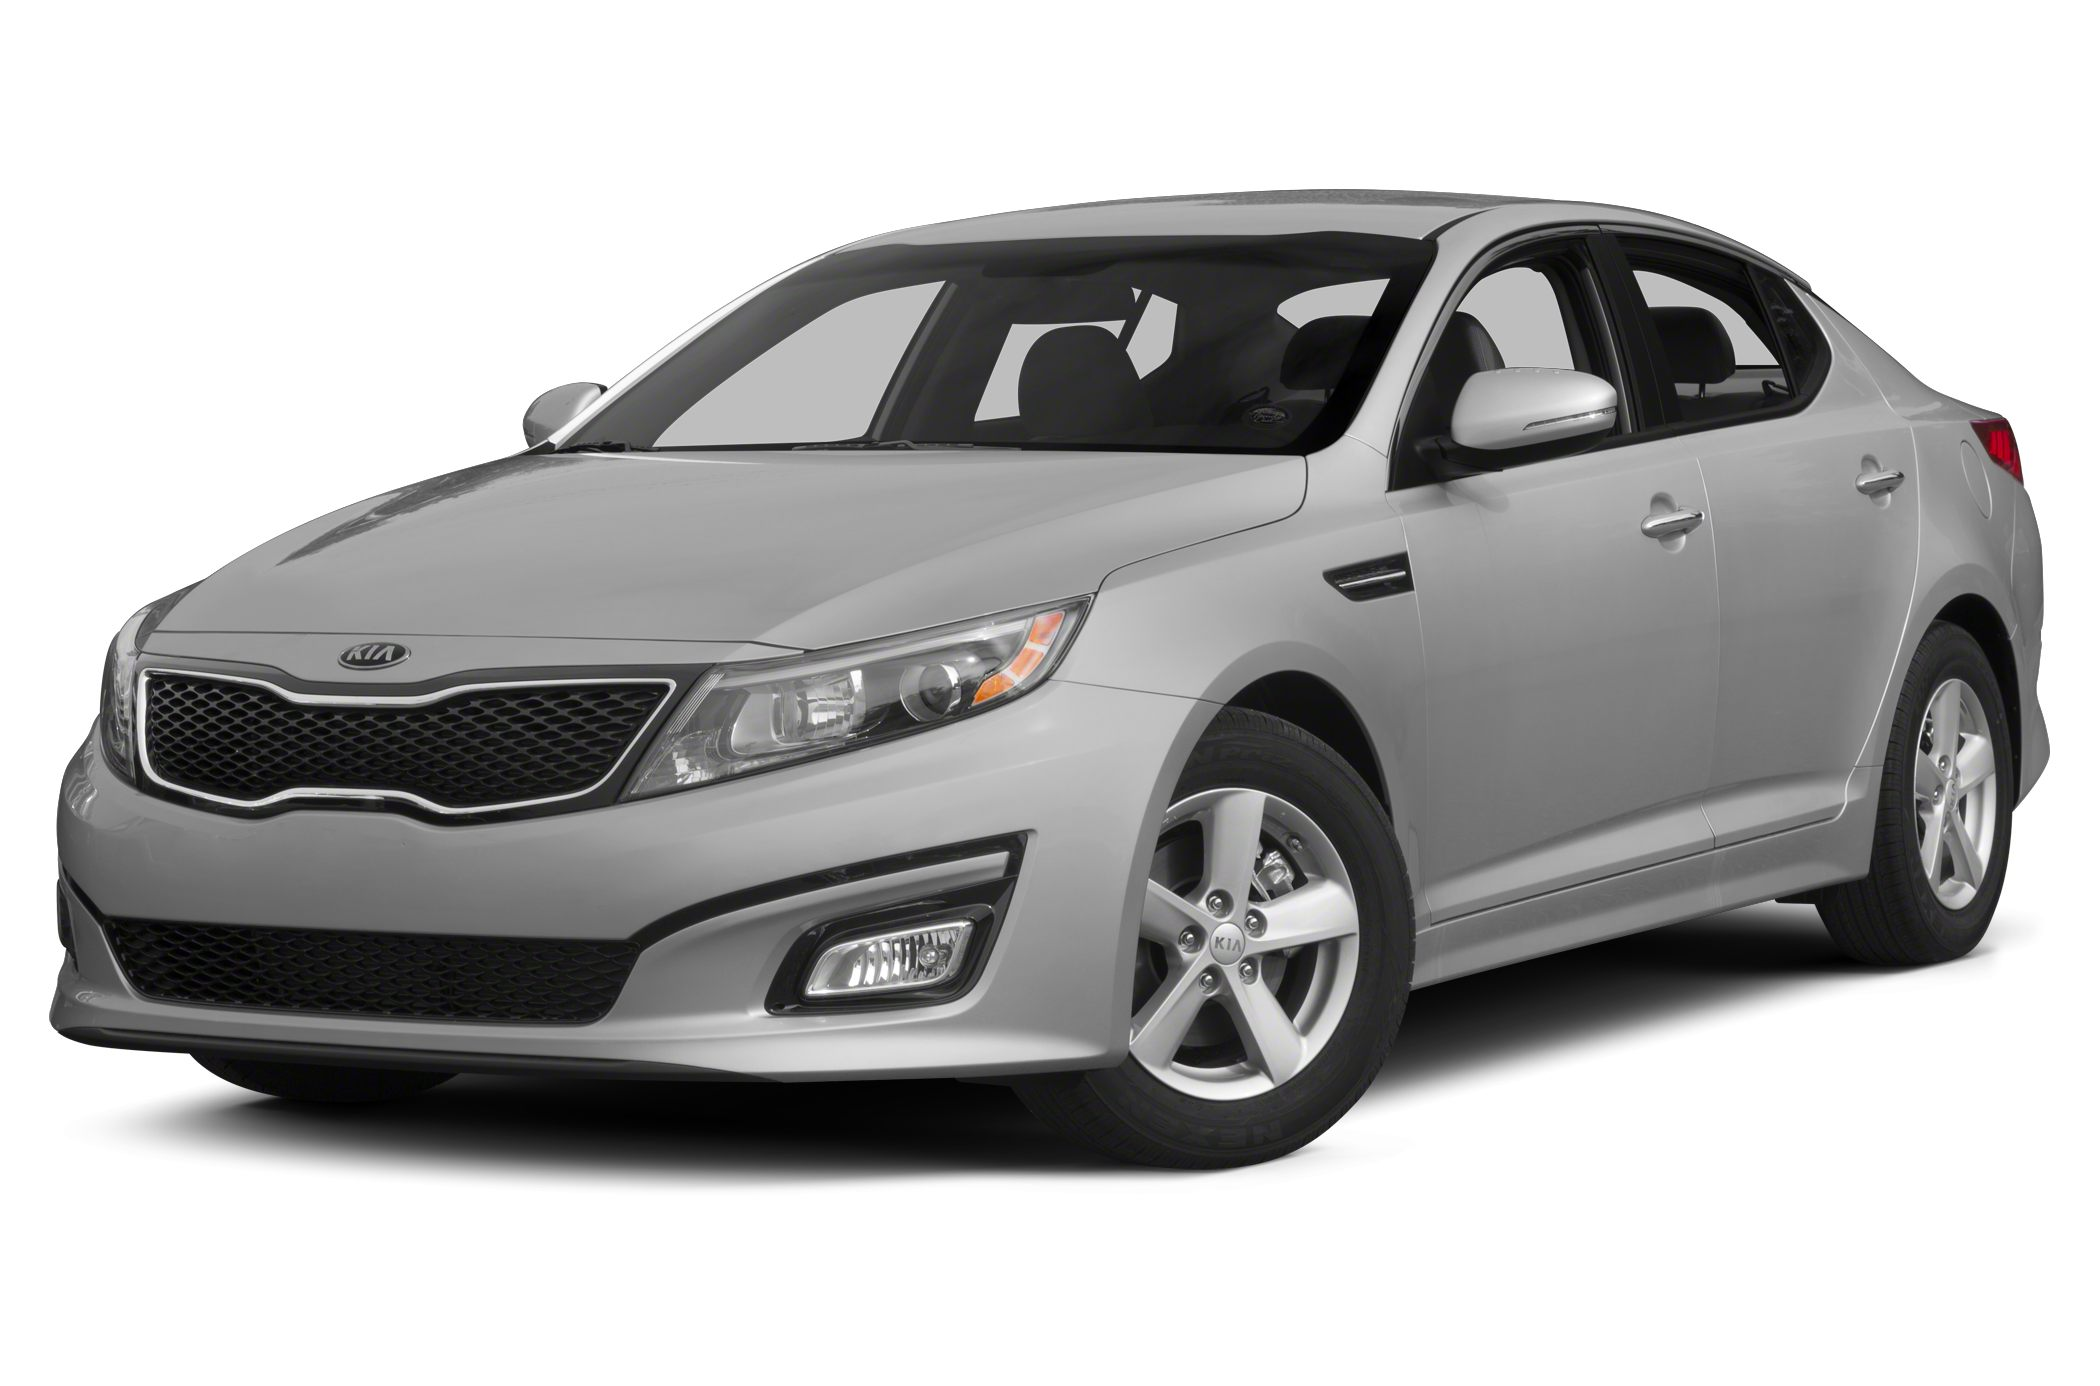 2015 Kia Optima LX Miles 34879Color Gray Stock U2348 VIN 5XXGM4A75FG477312